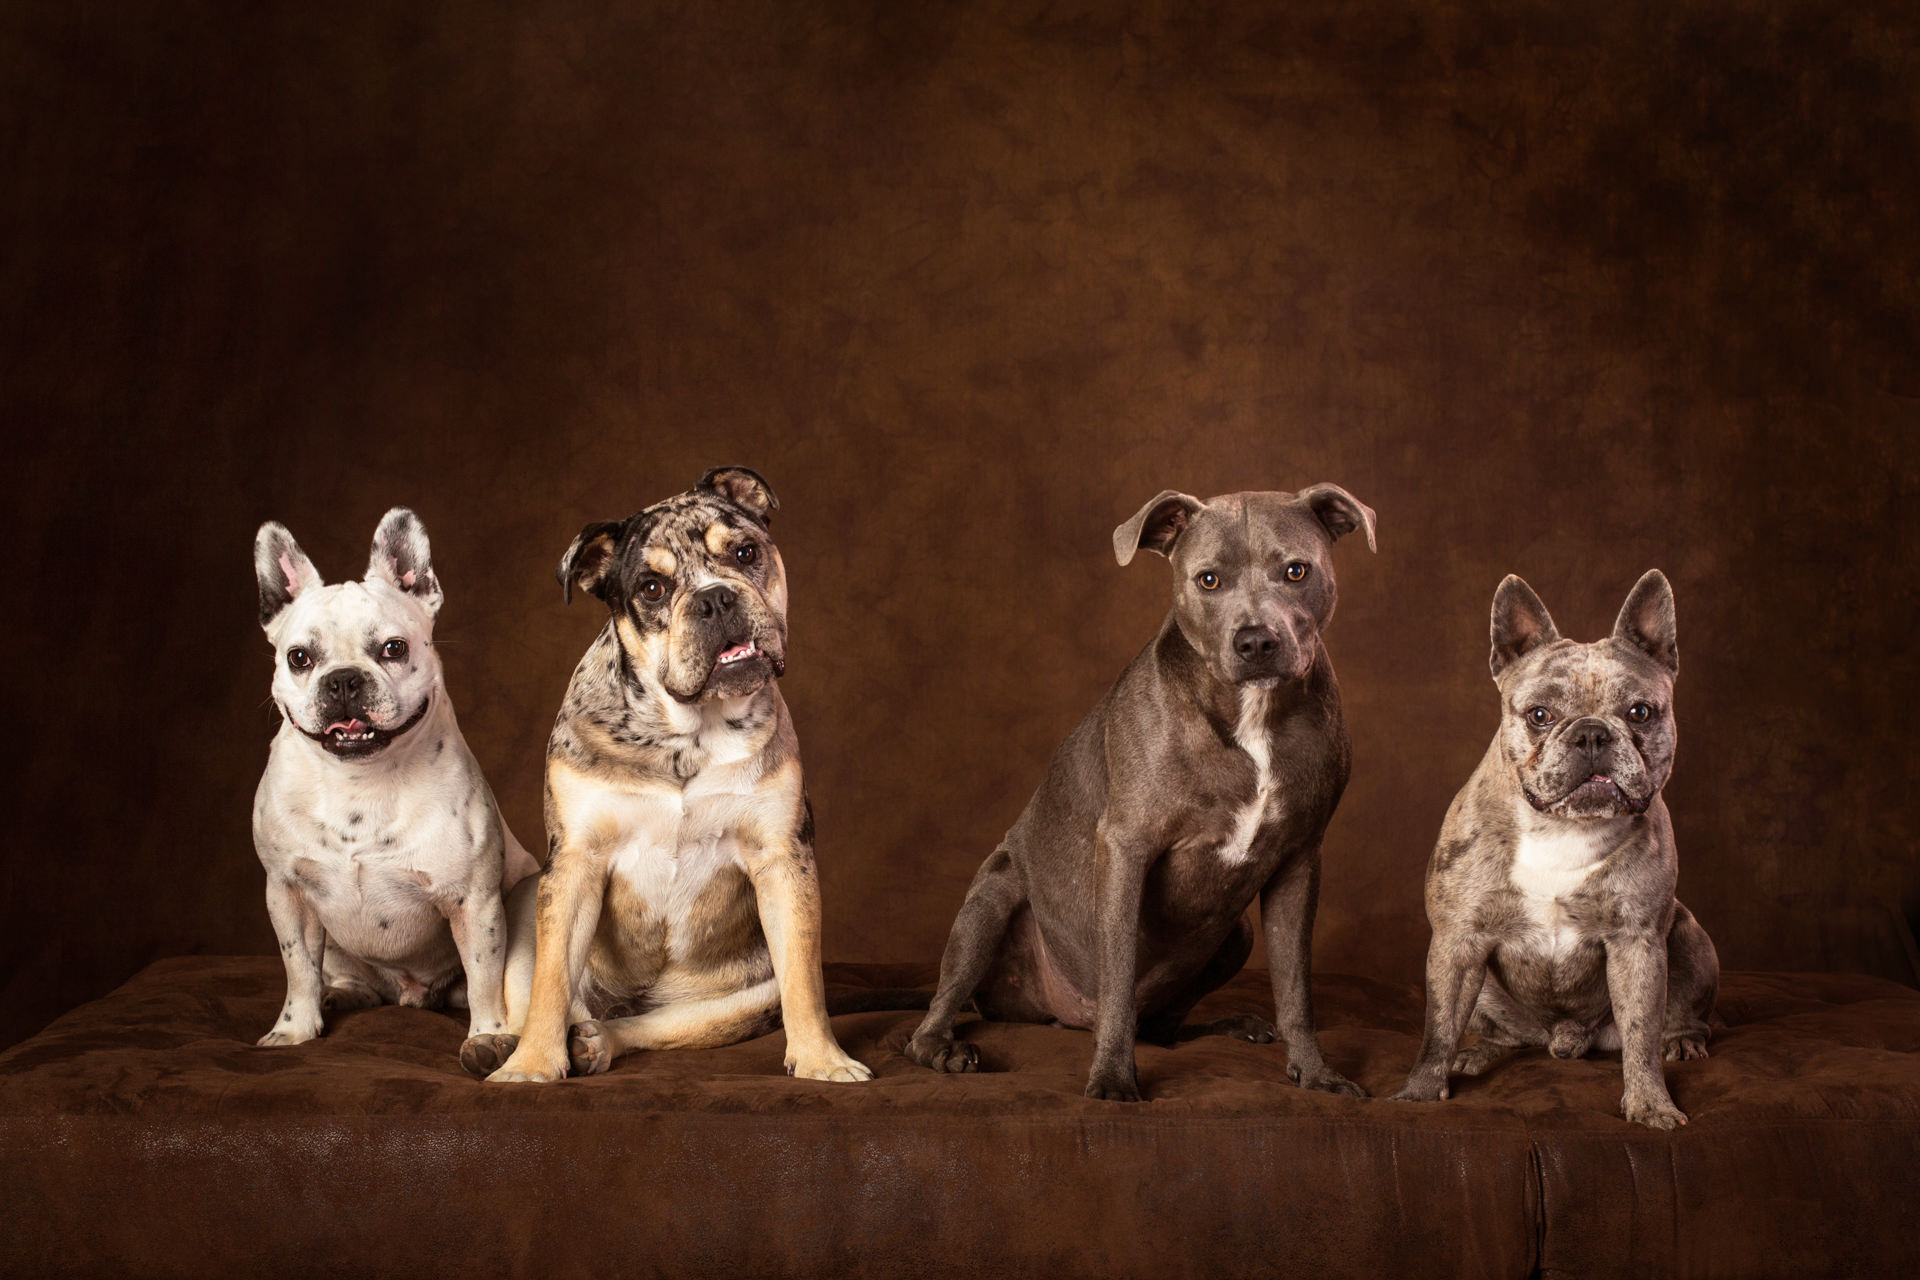 The-Artful-Dog-Studio-Dog-Photographer-10-1